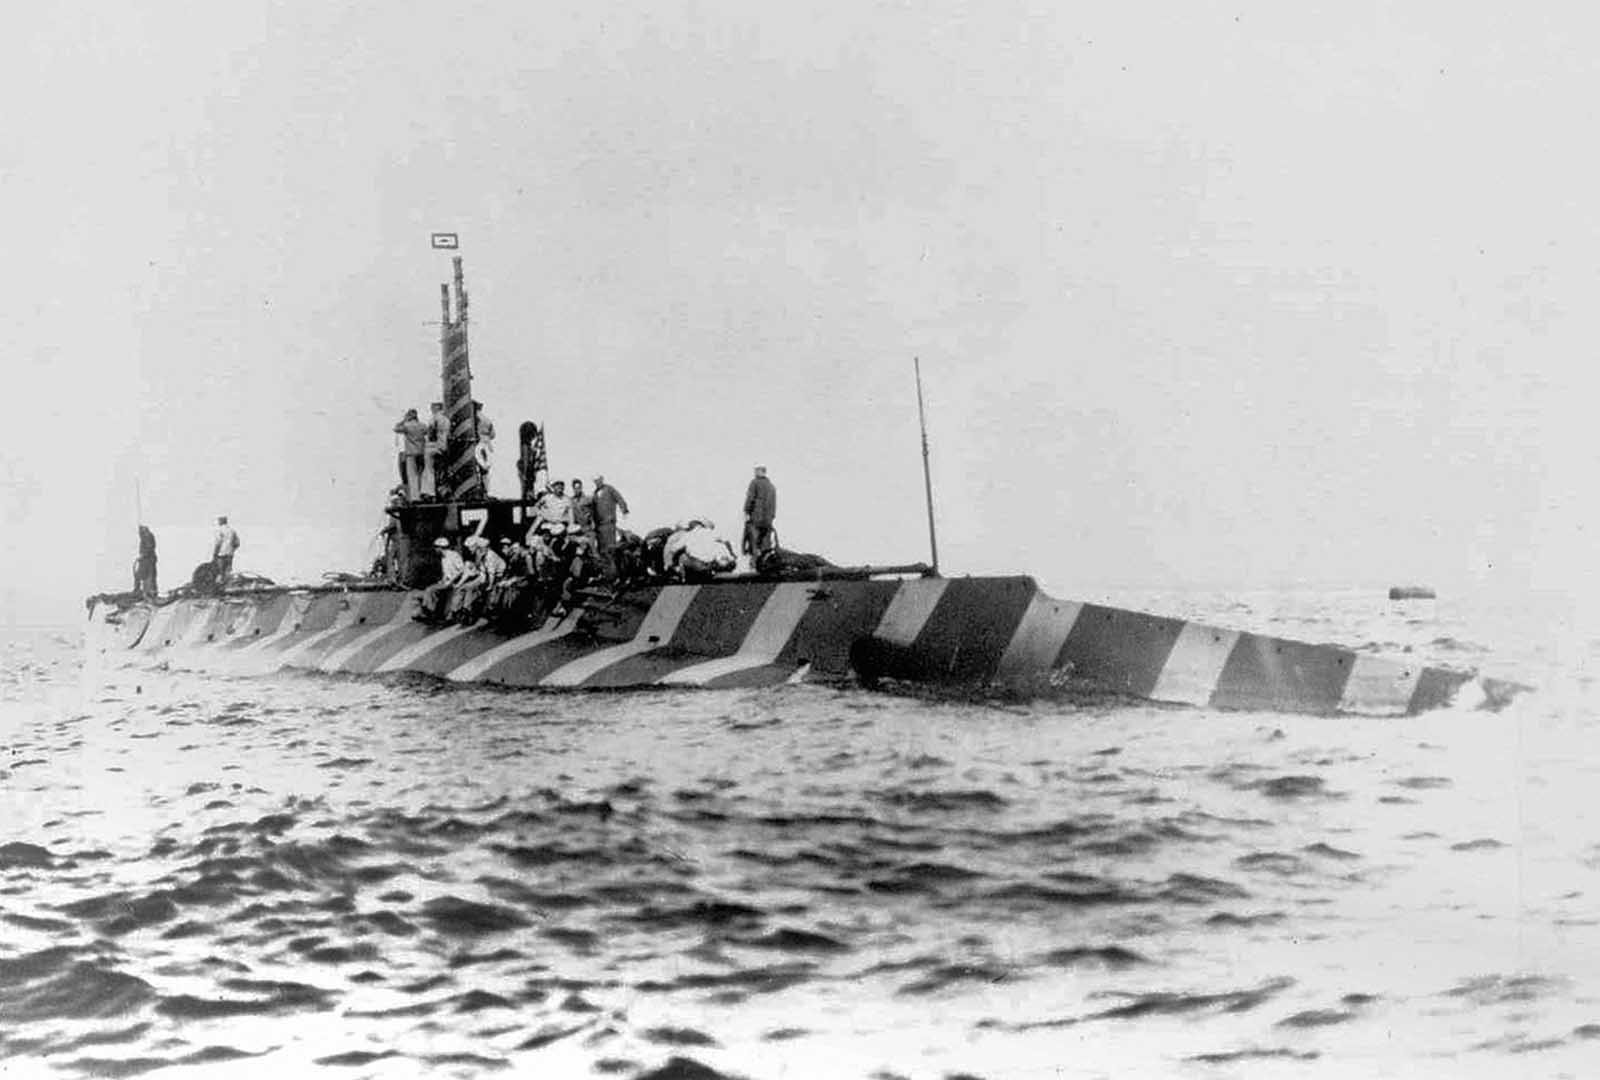 Portside view of the camouflaged USS K-2 (SS-33), a K-class submarine, off Pensacola, Florida on April 12, 1916.